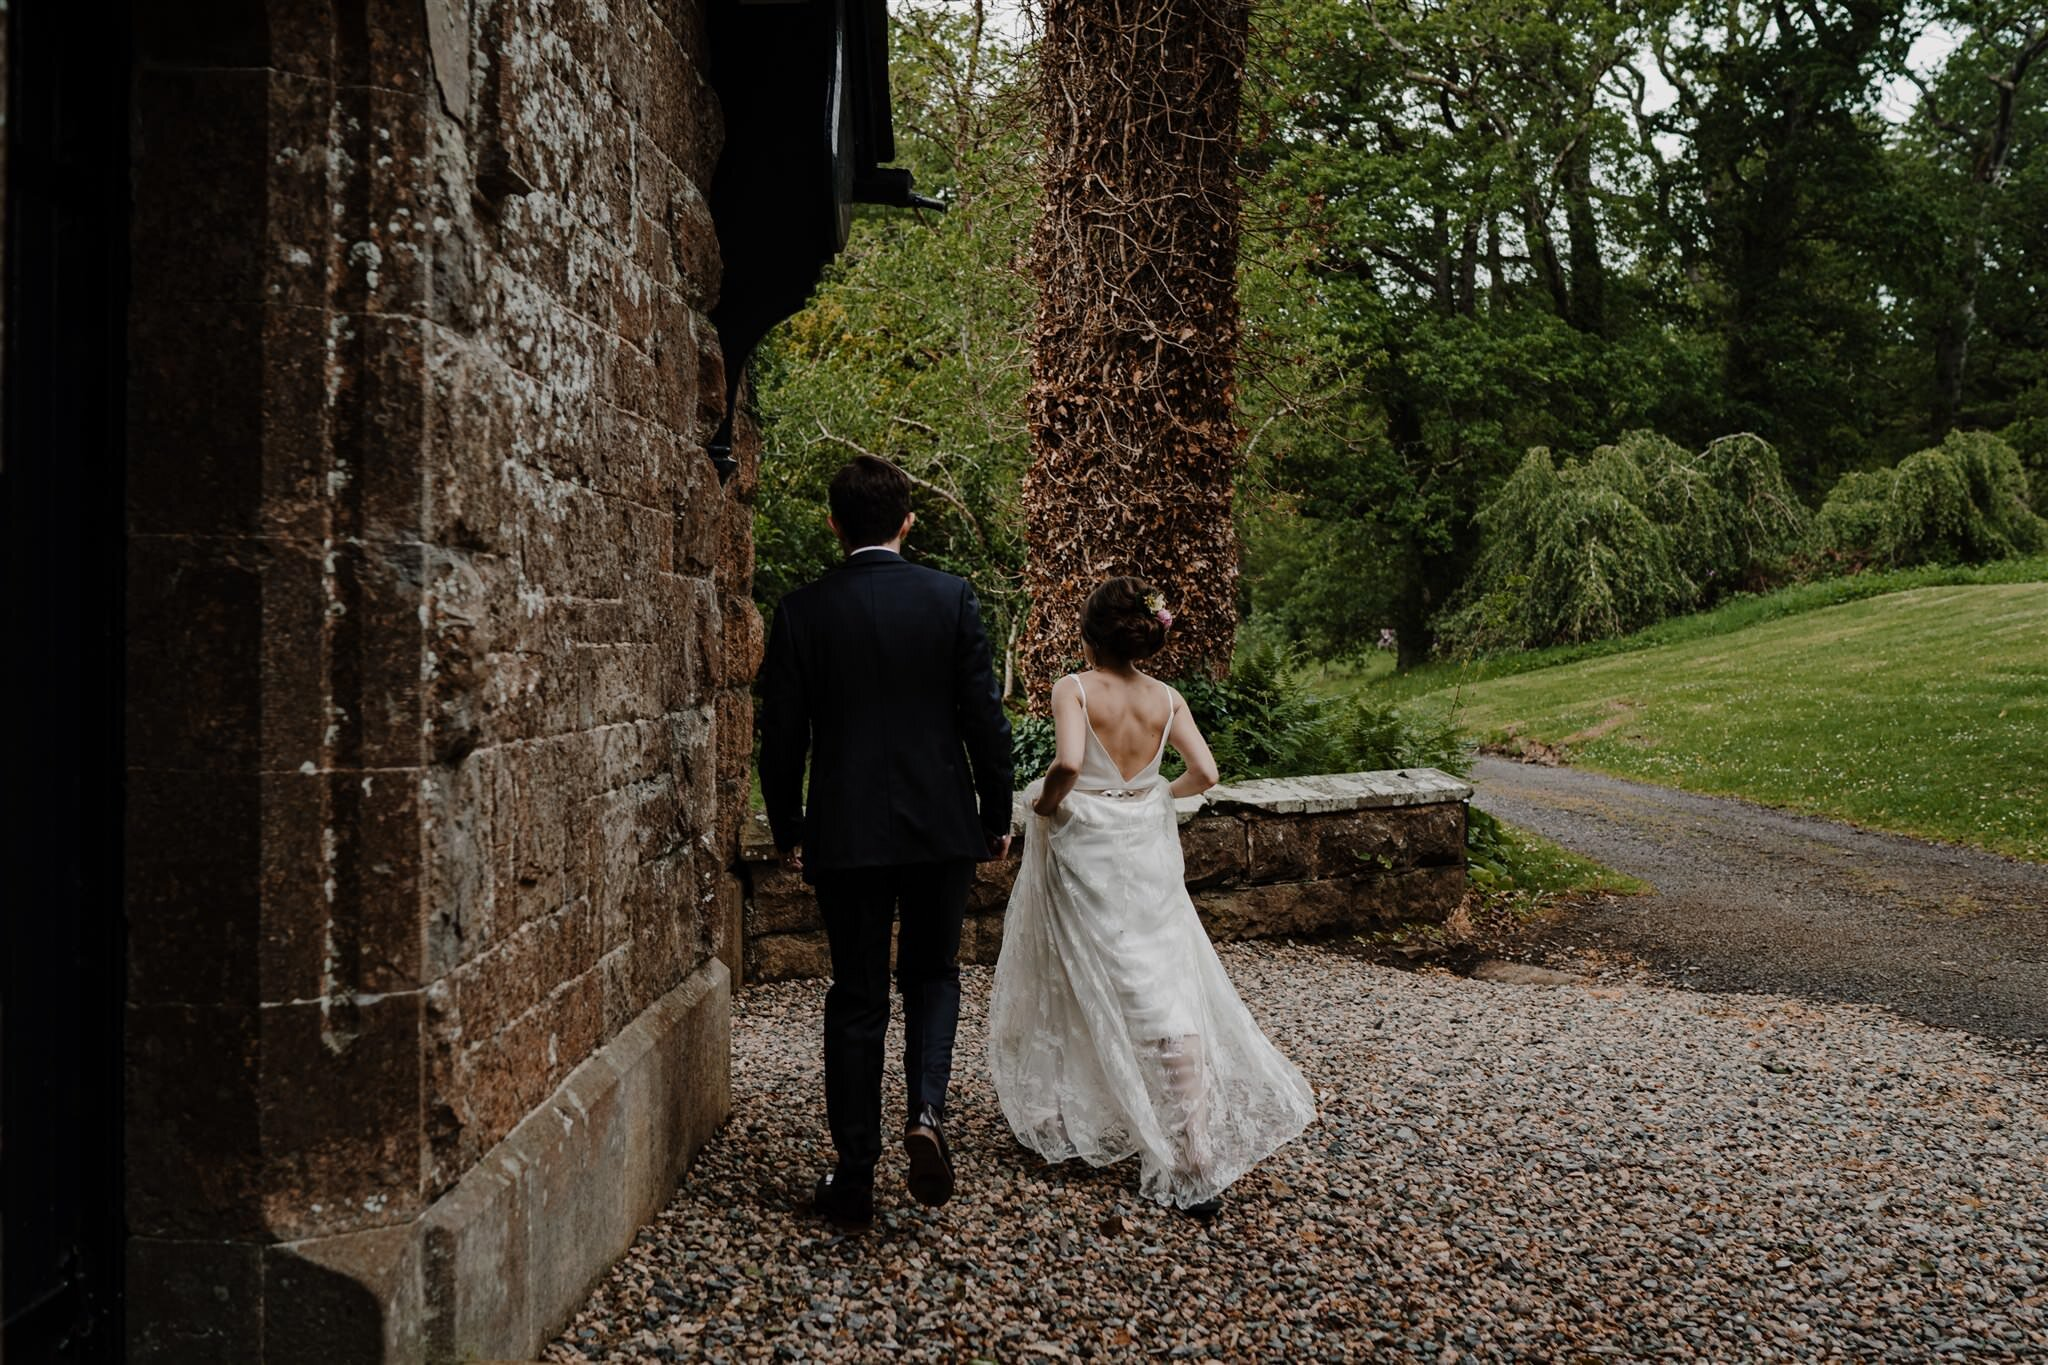 Charlie brear wedding dress crom castle intimate wedding ireland